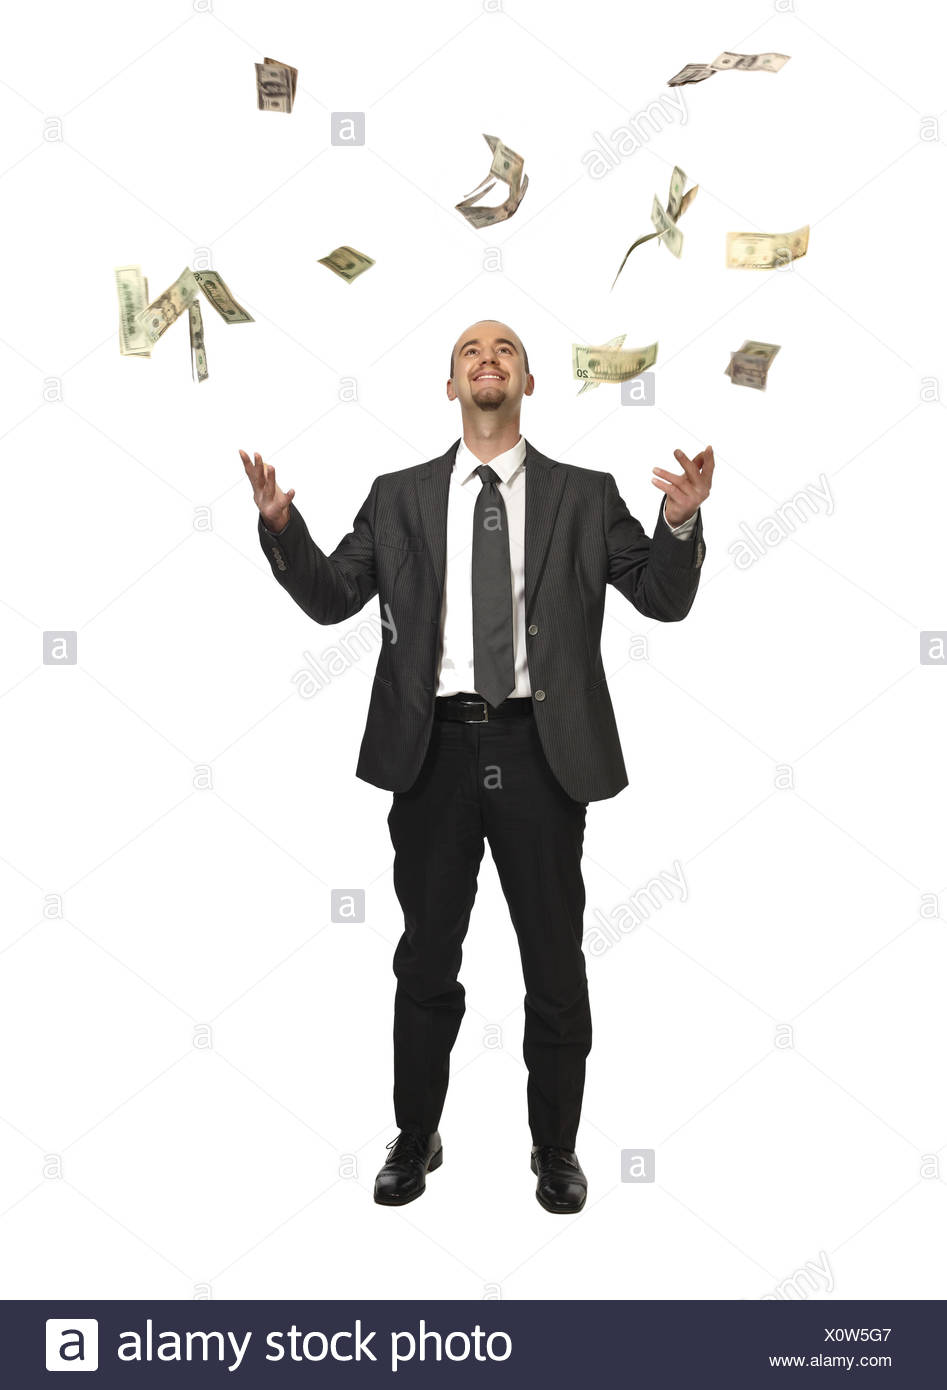 good business - Stock Image